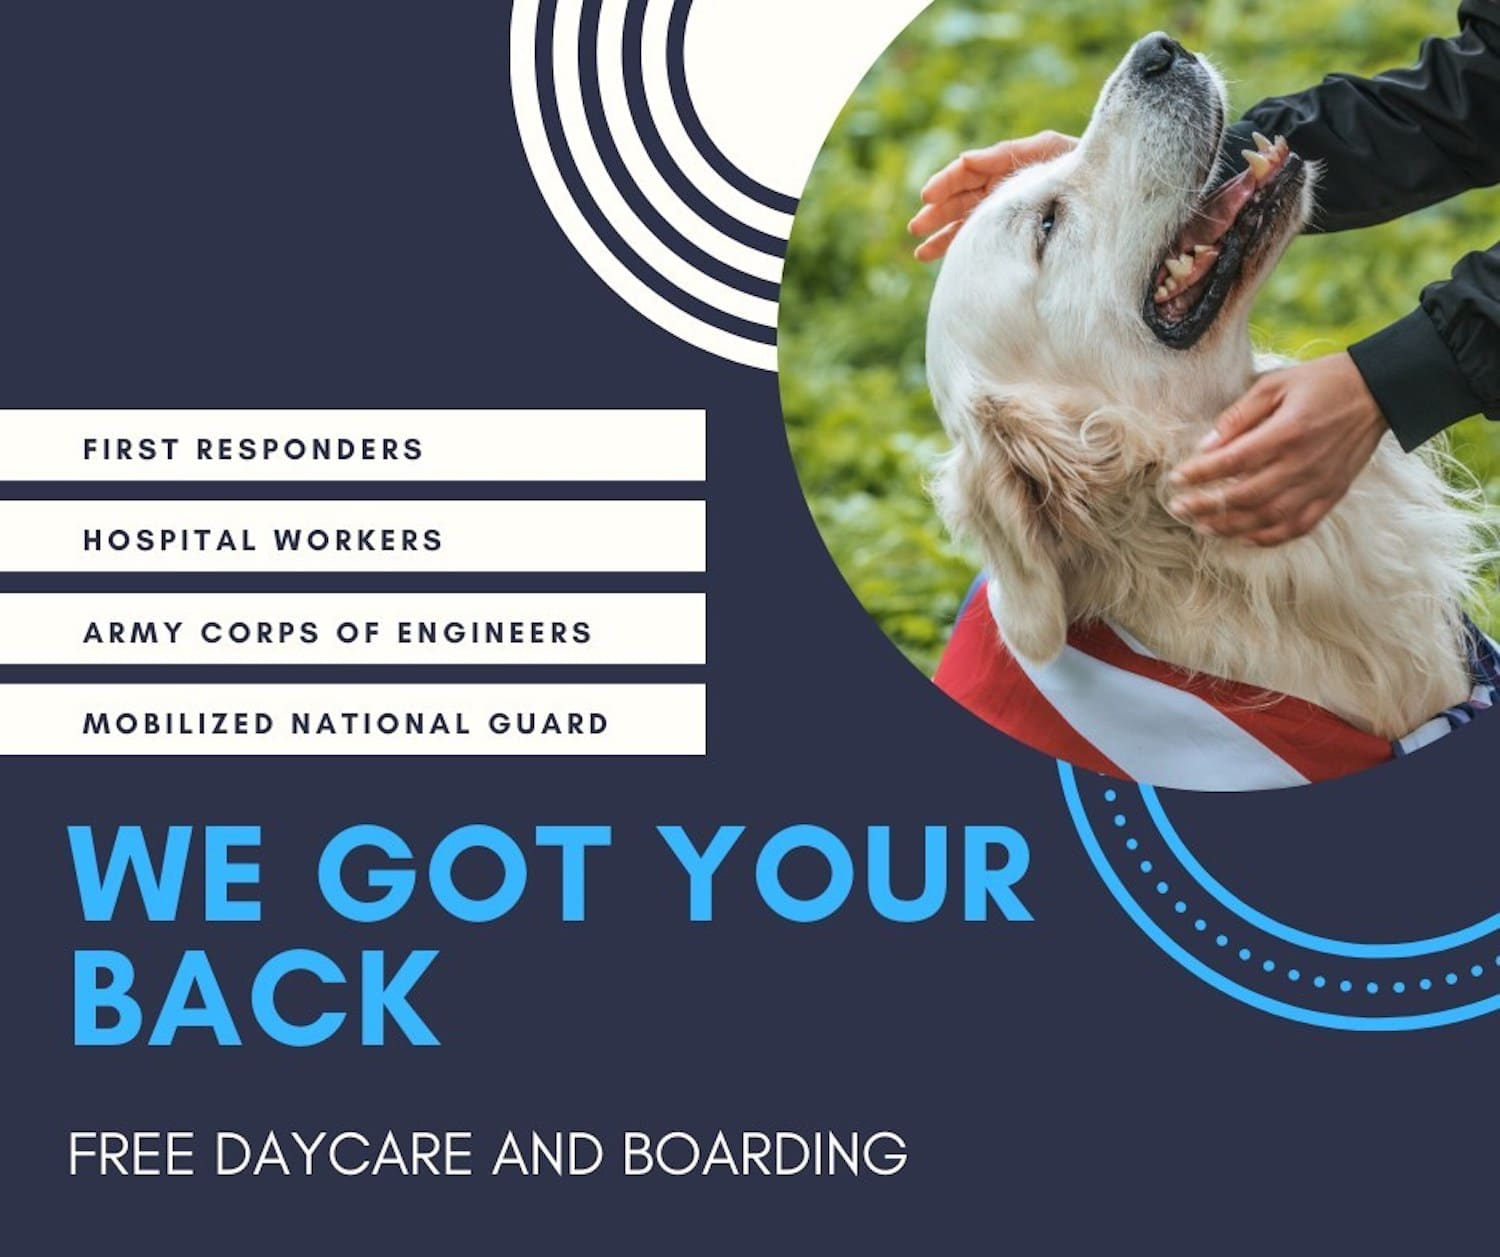 Free boarding and daycare for pets being offered to first responders and others working on front lines during COVID crisis